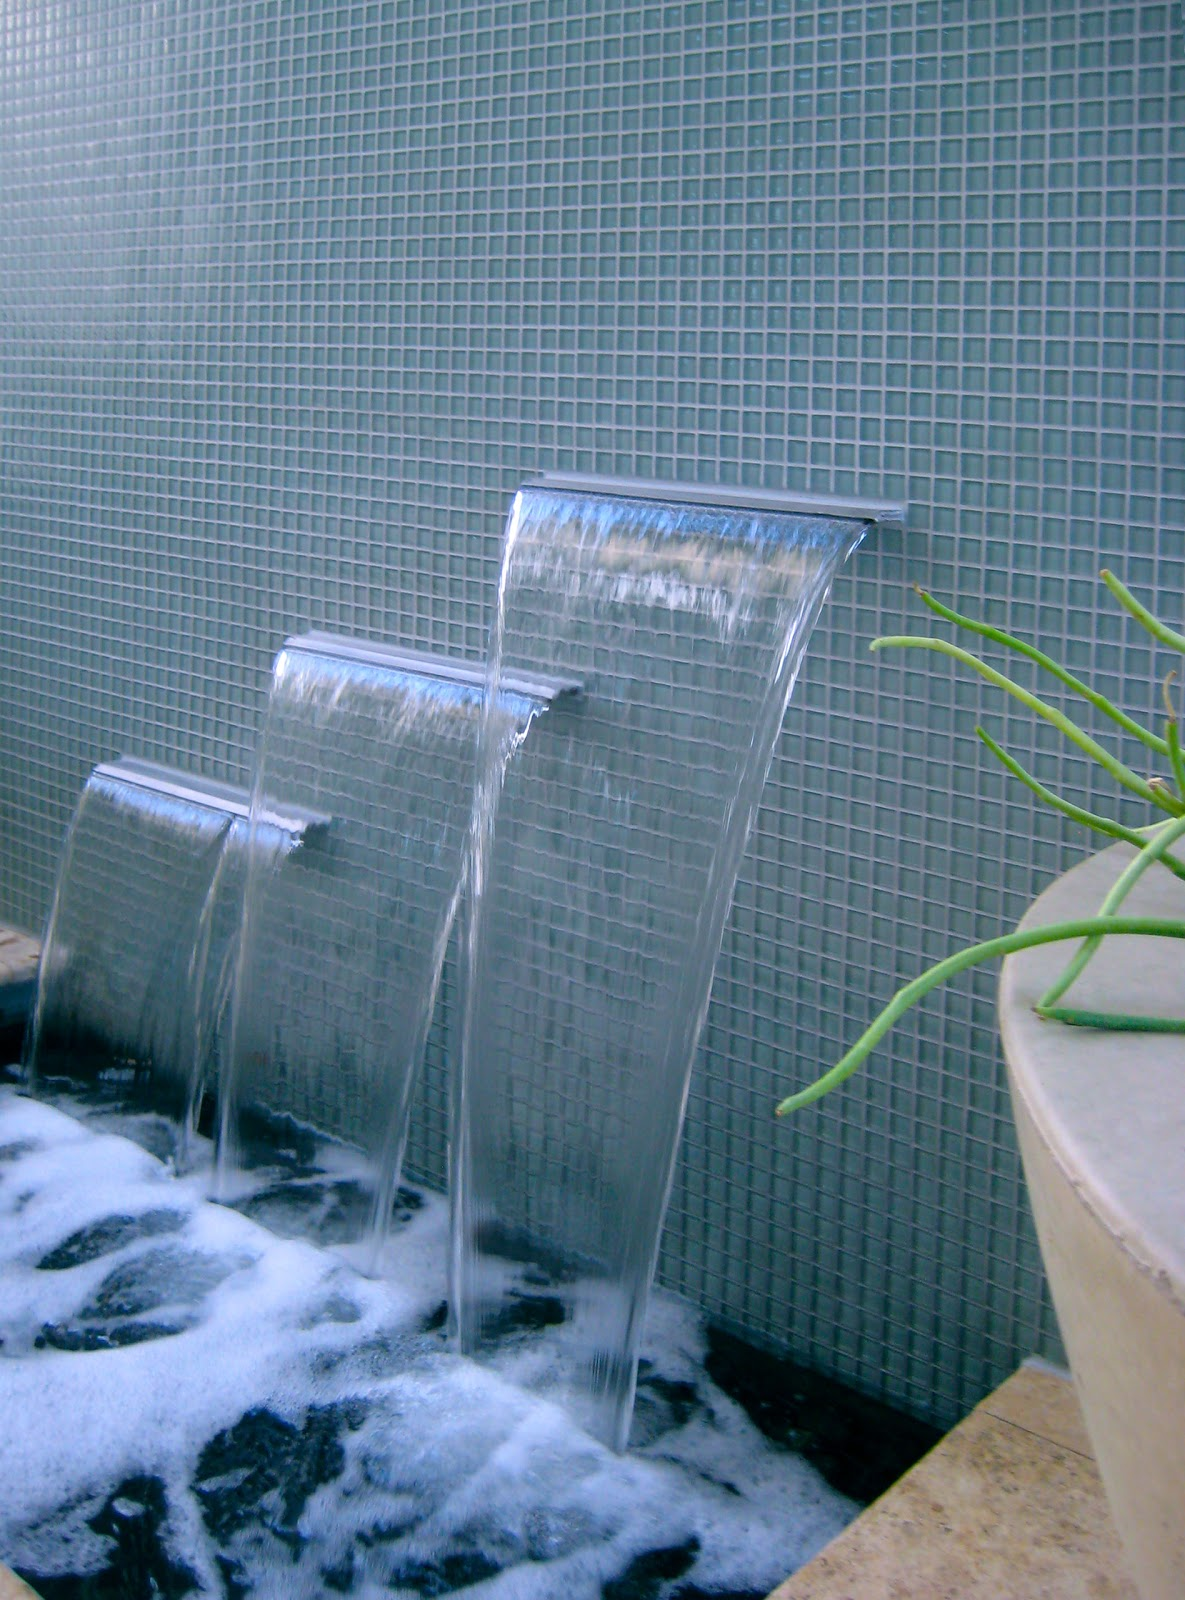 Alpentile glass tile swimming pools contemporary glass for Glass waterfall design